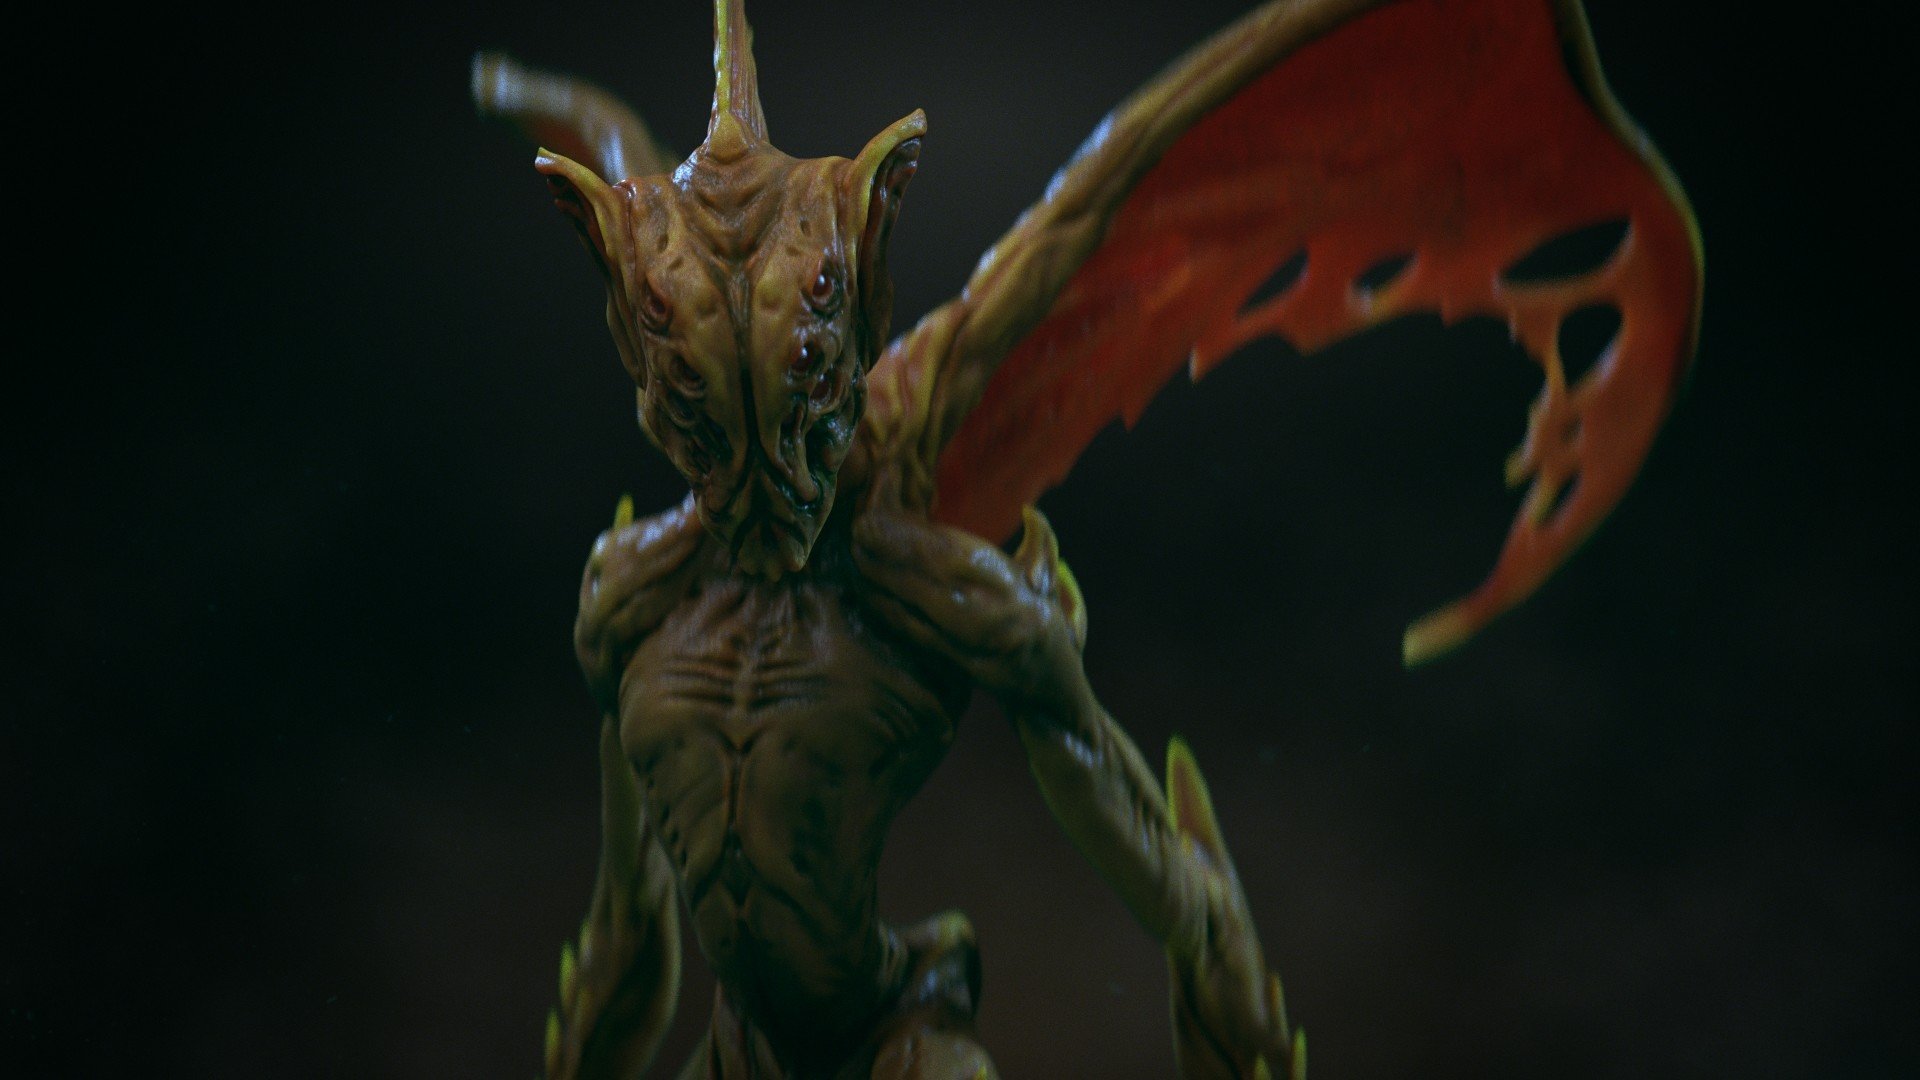 Ilhan yilmaz creature close render v02 2